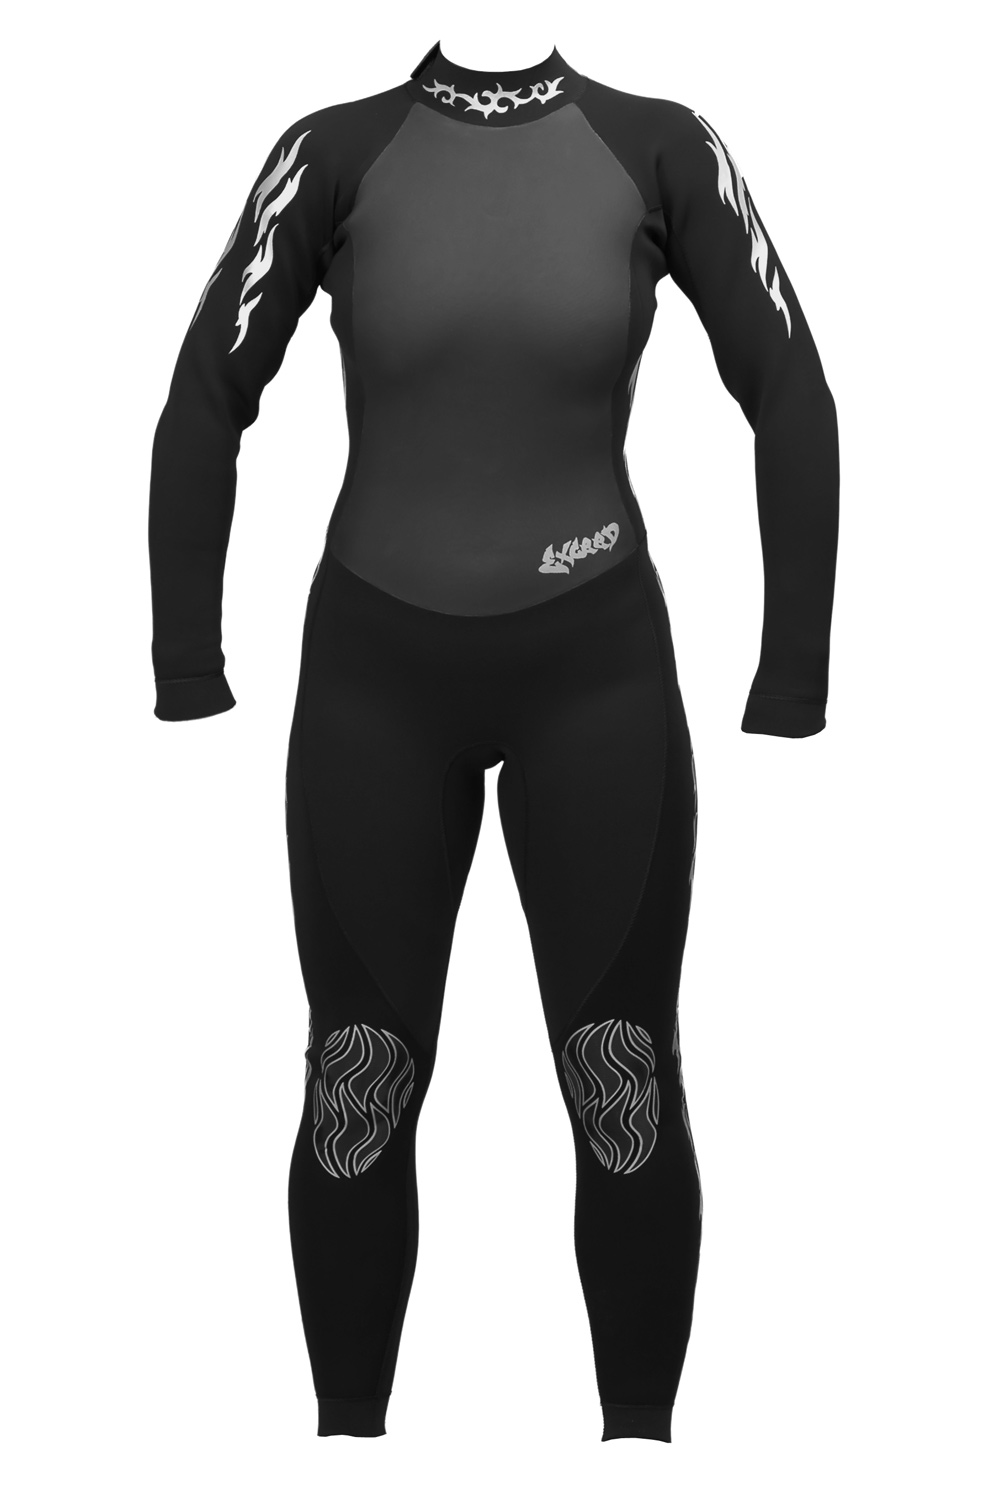 Exceed Empress Black Womens 3/2mm Full Wetsuit